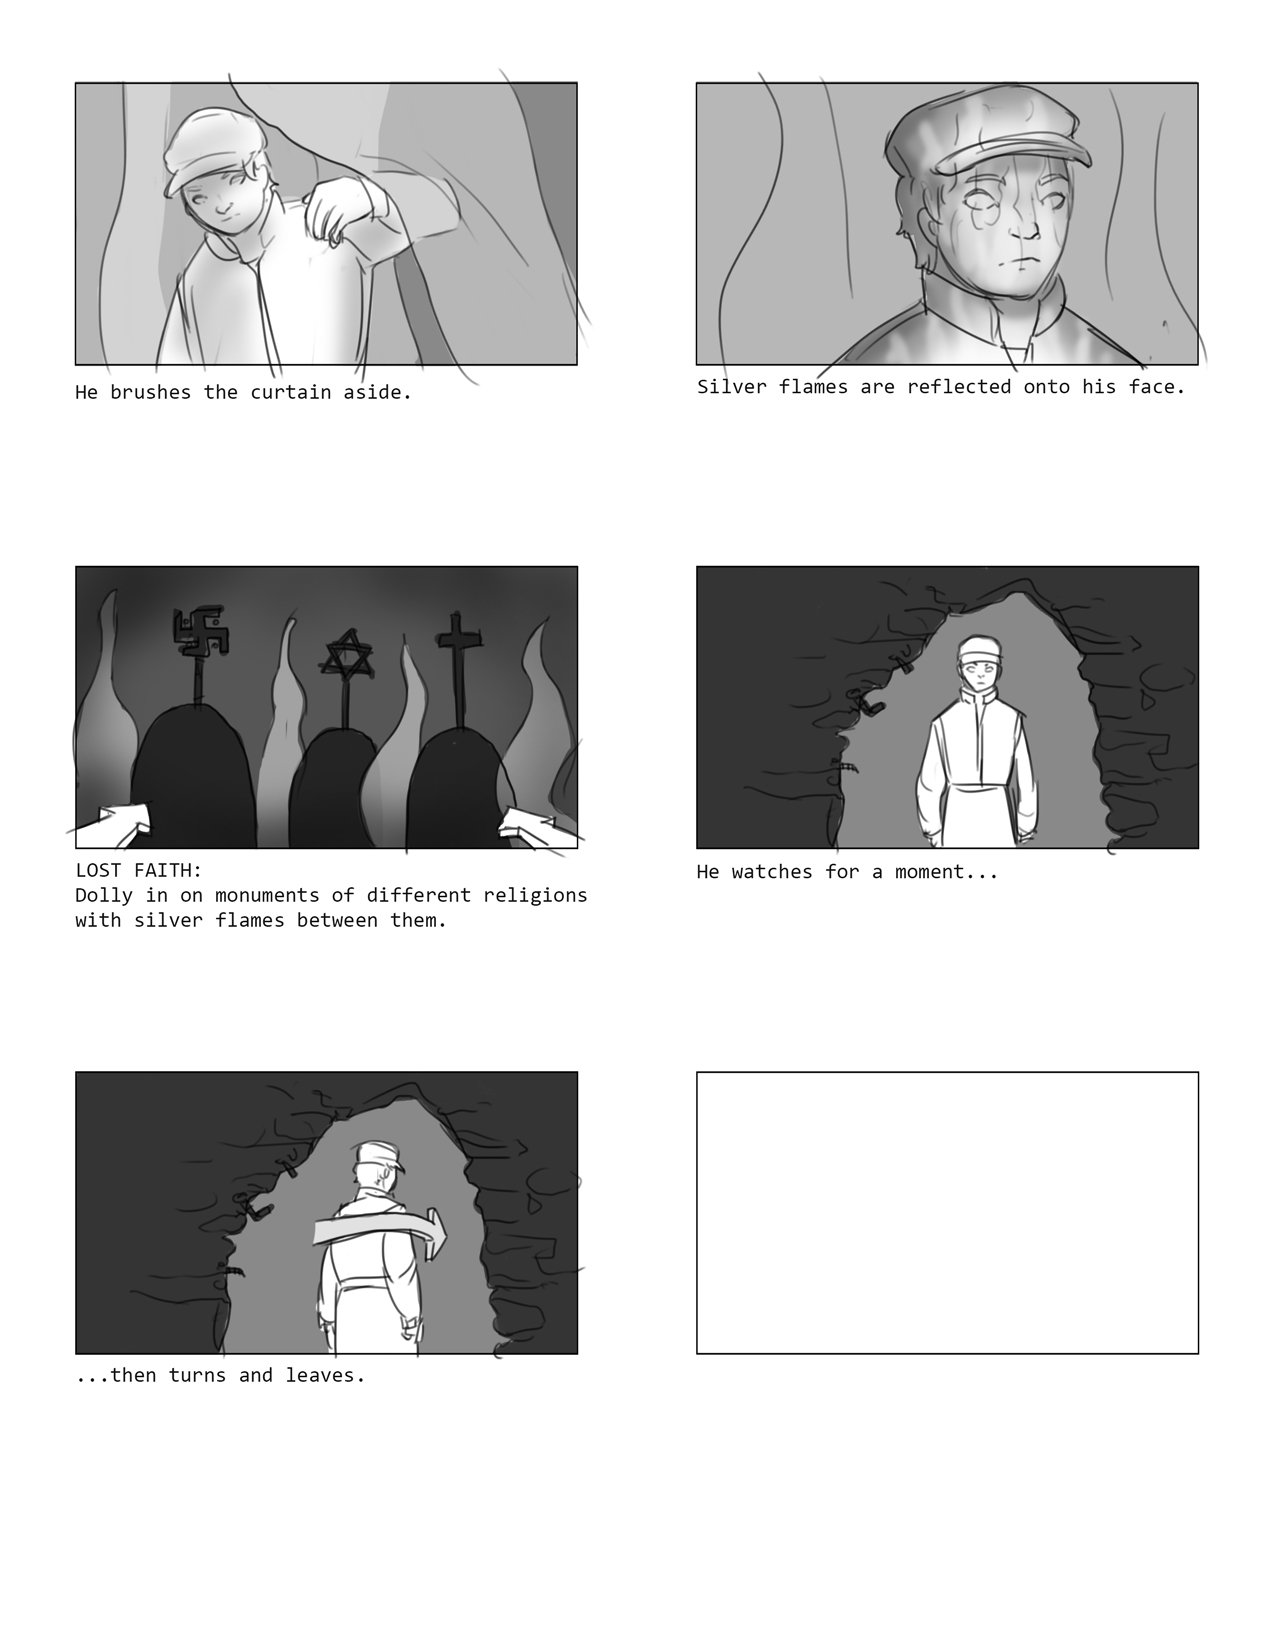 velorenstoryboards13.jpg